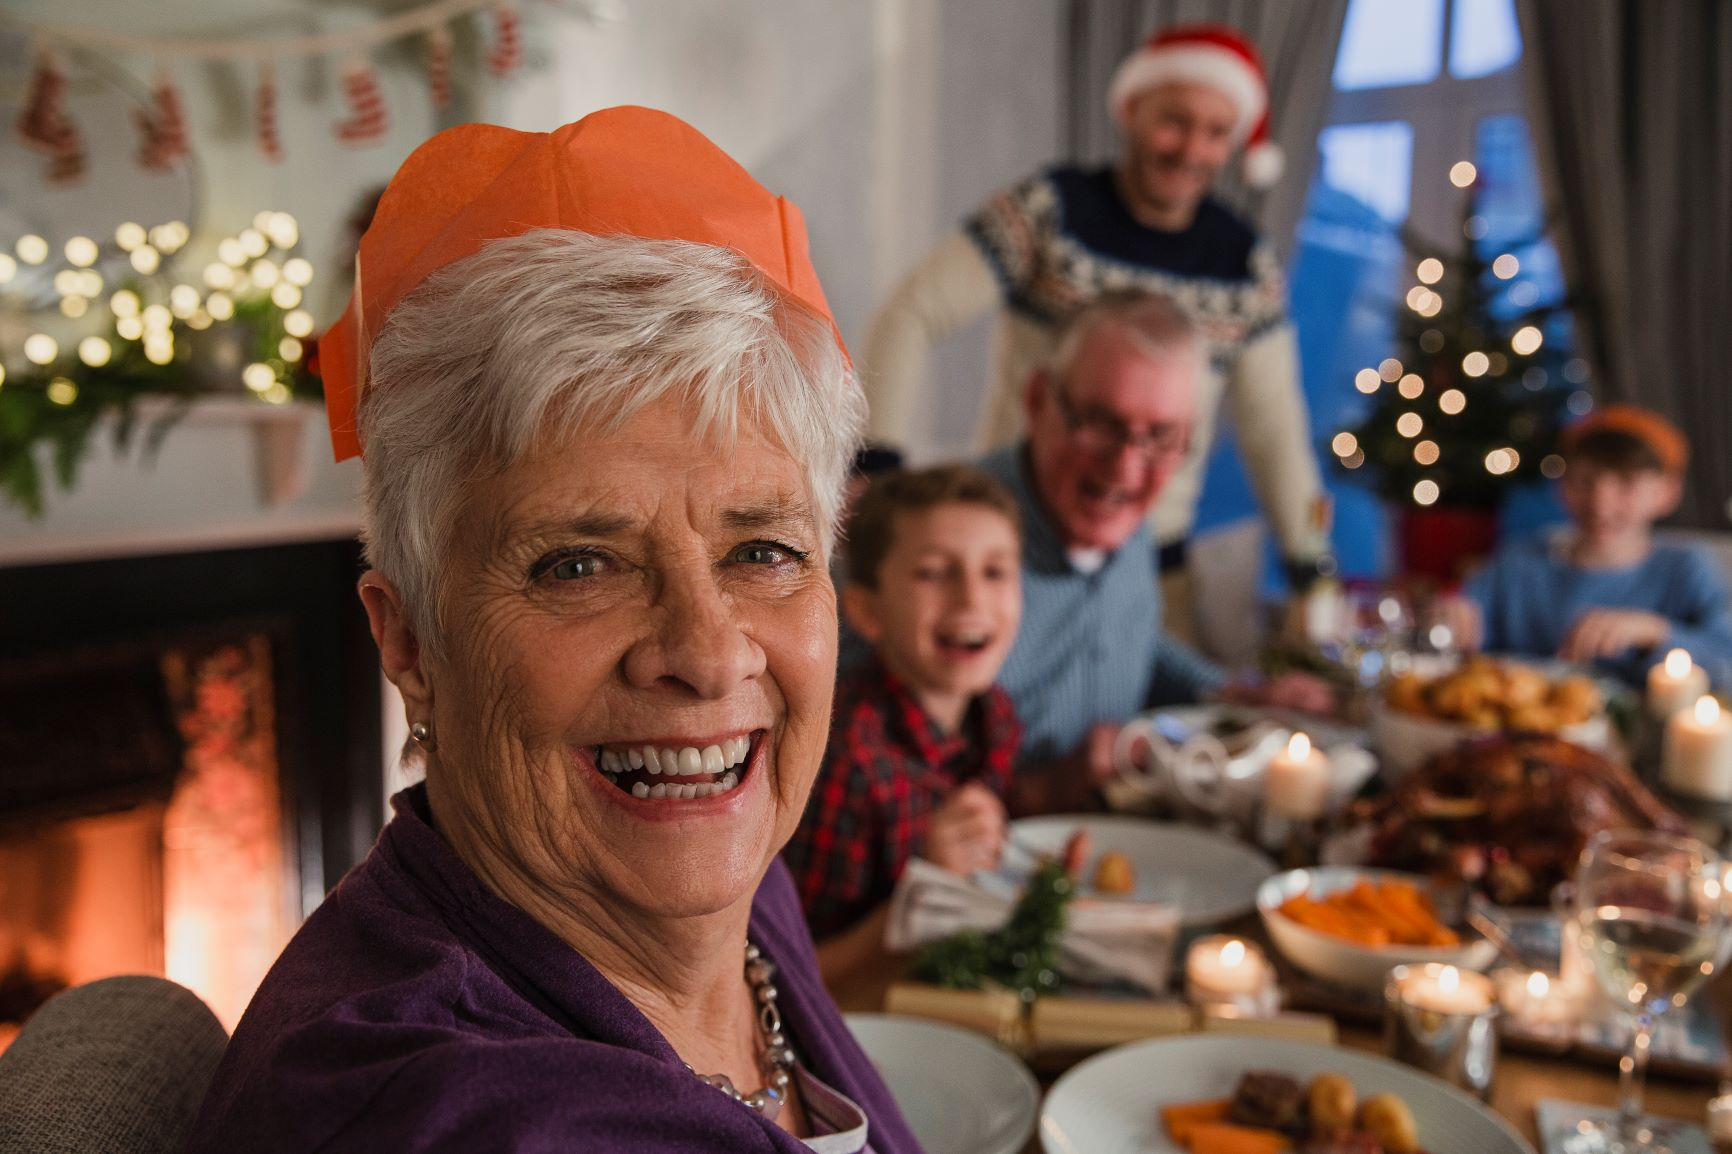 Five ways you can have a dementia-friendly Christmas this year